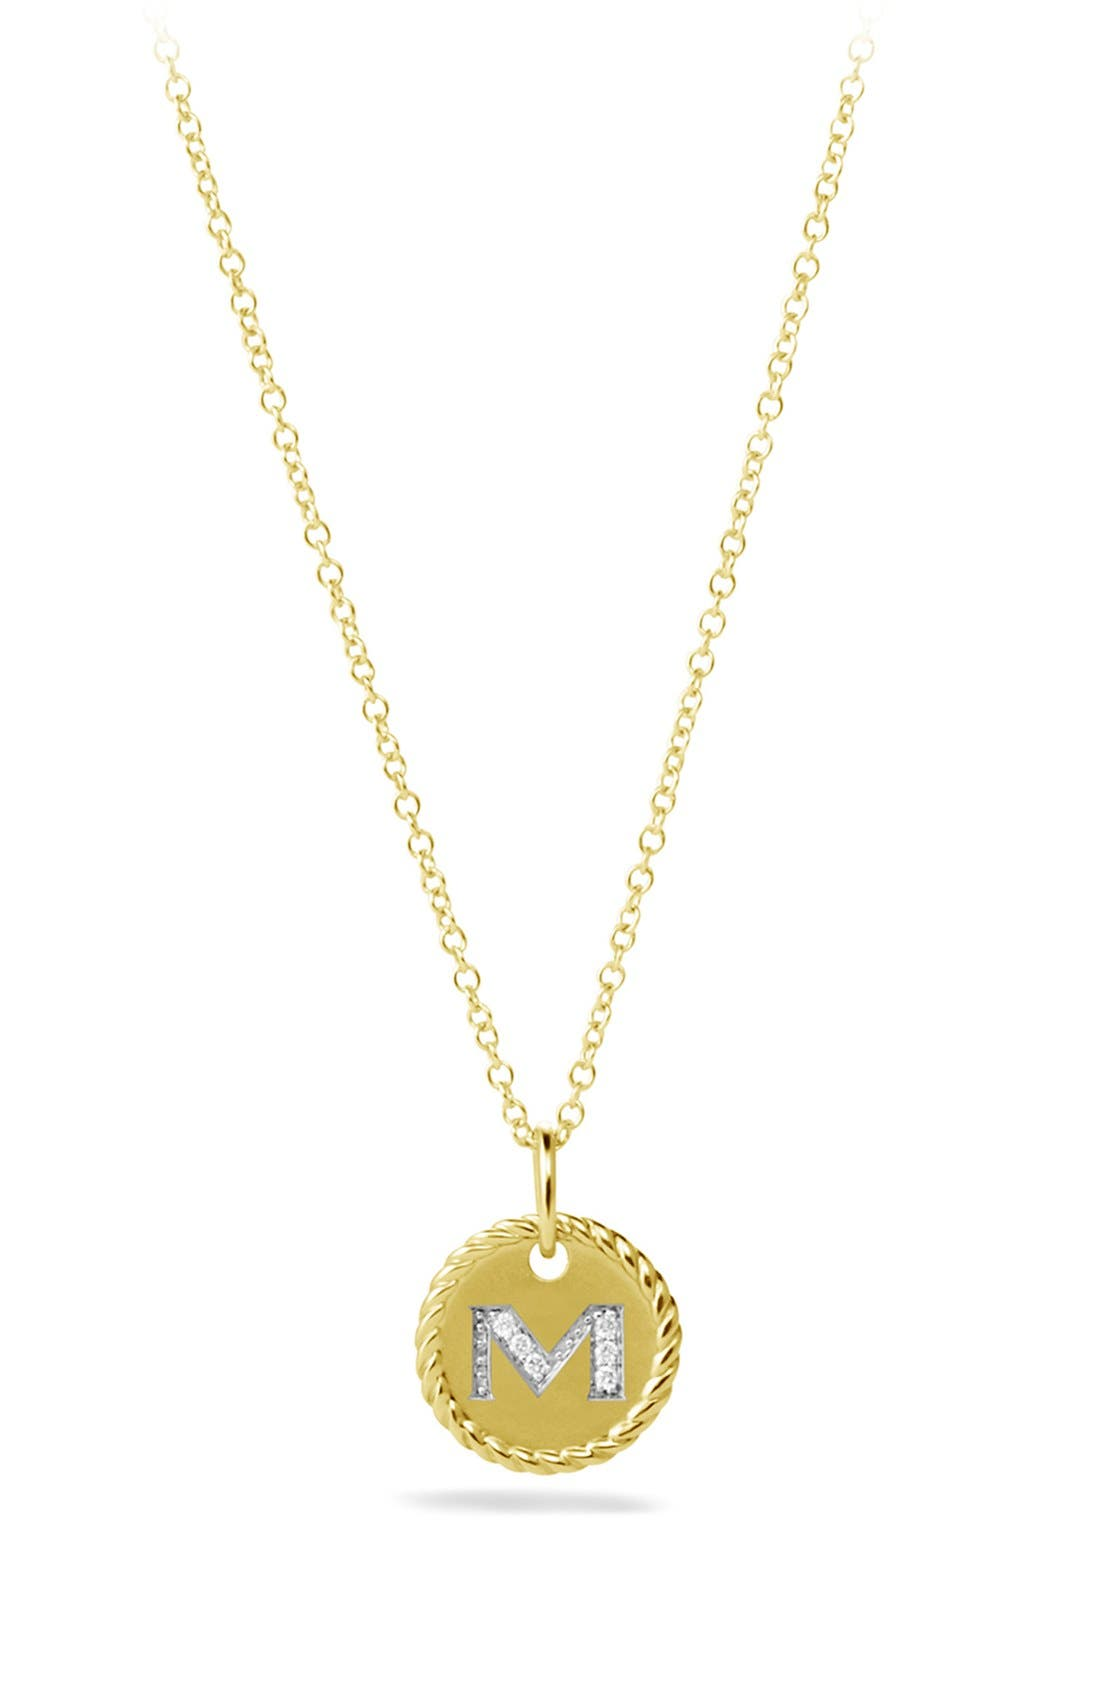 'Cable Collectibles' Initial Pendant with Diamonds in Gold on Chain,                             Main thumbnail 1, color,                             M